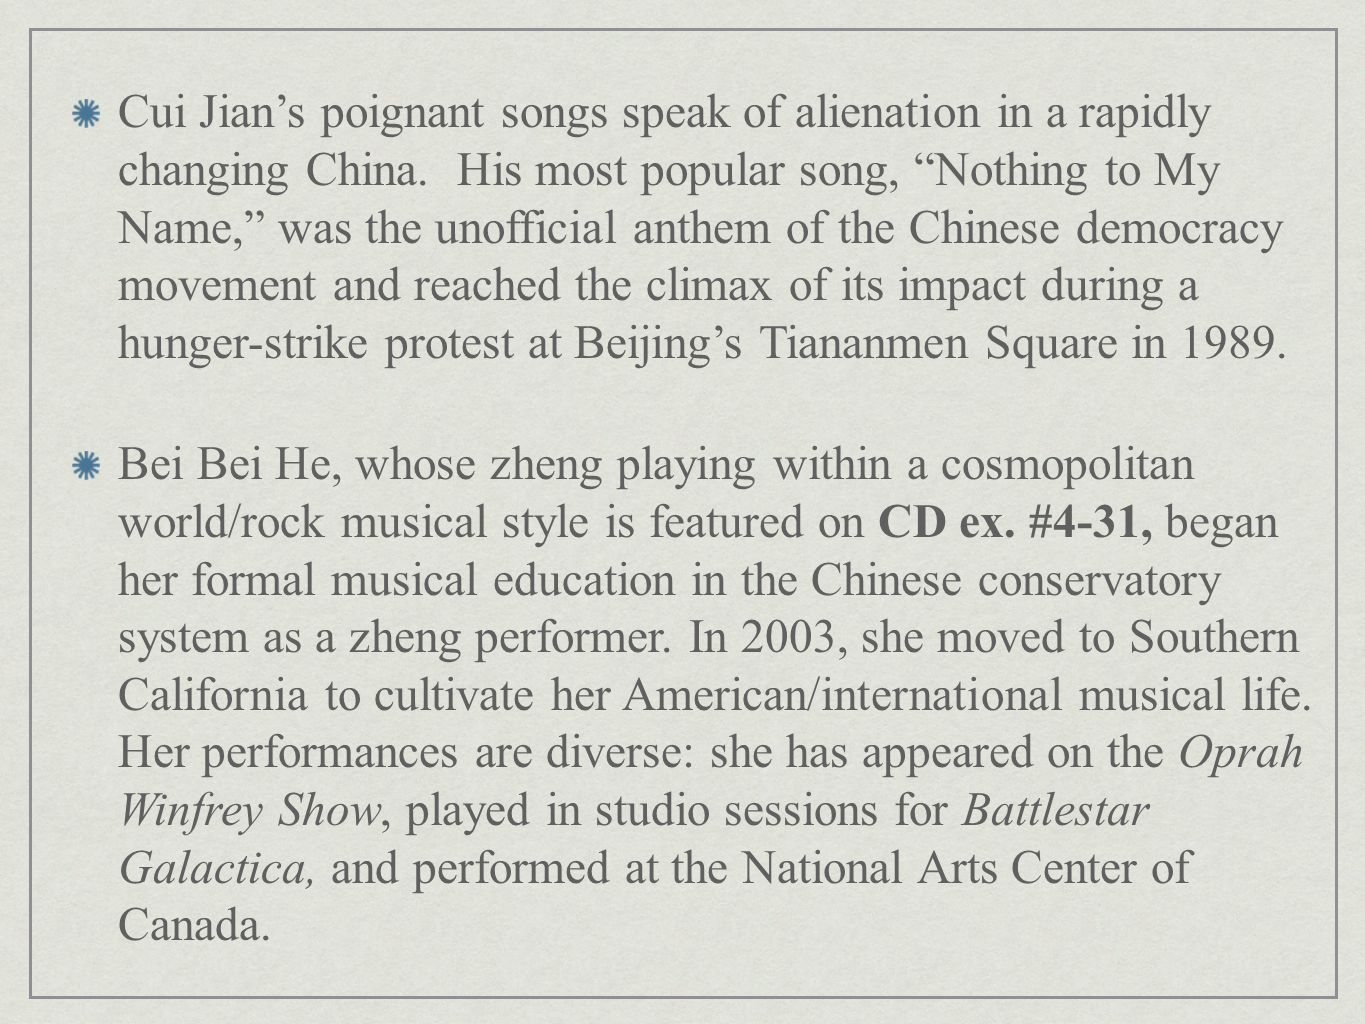 Cui Jian's poignant songs speak of alienation in a rapidly changing China. His most popular song, Nothing to My Name, was the unofficial anthem of the Chinese democracy movement and reached the climax of its impact during a hunger-strike protest at Beijing's Tiananmen Square in 1989.